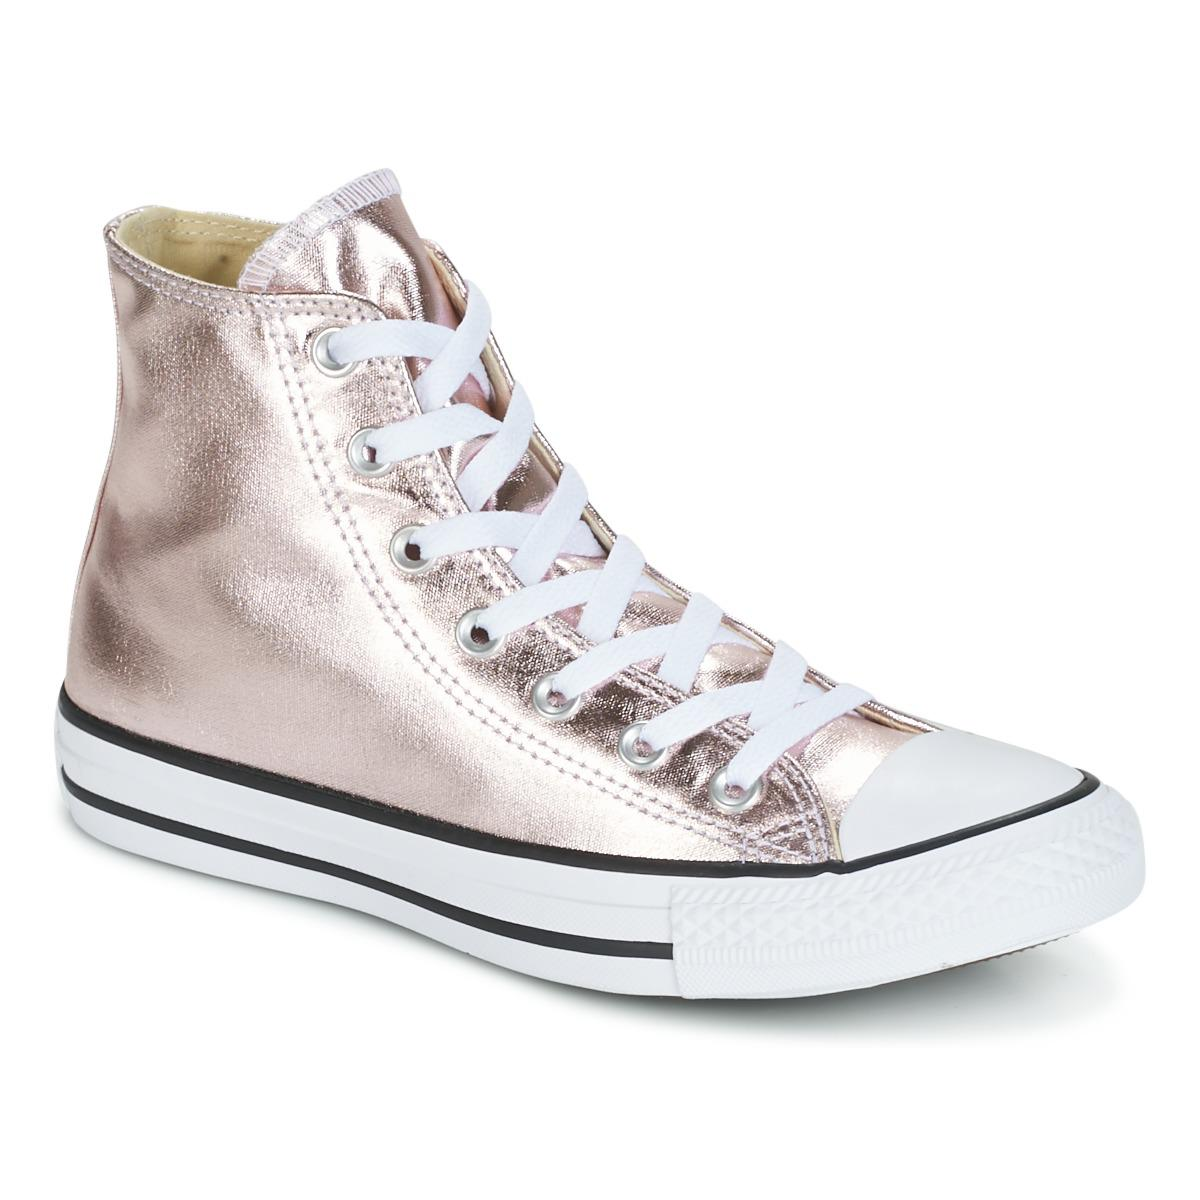 96d0dba5ac360f Gallery. Previously sold at  rubbersole.co.uk · Women s Converse Chuck  Taylor ...